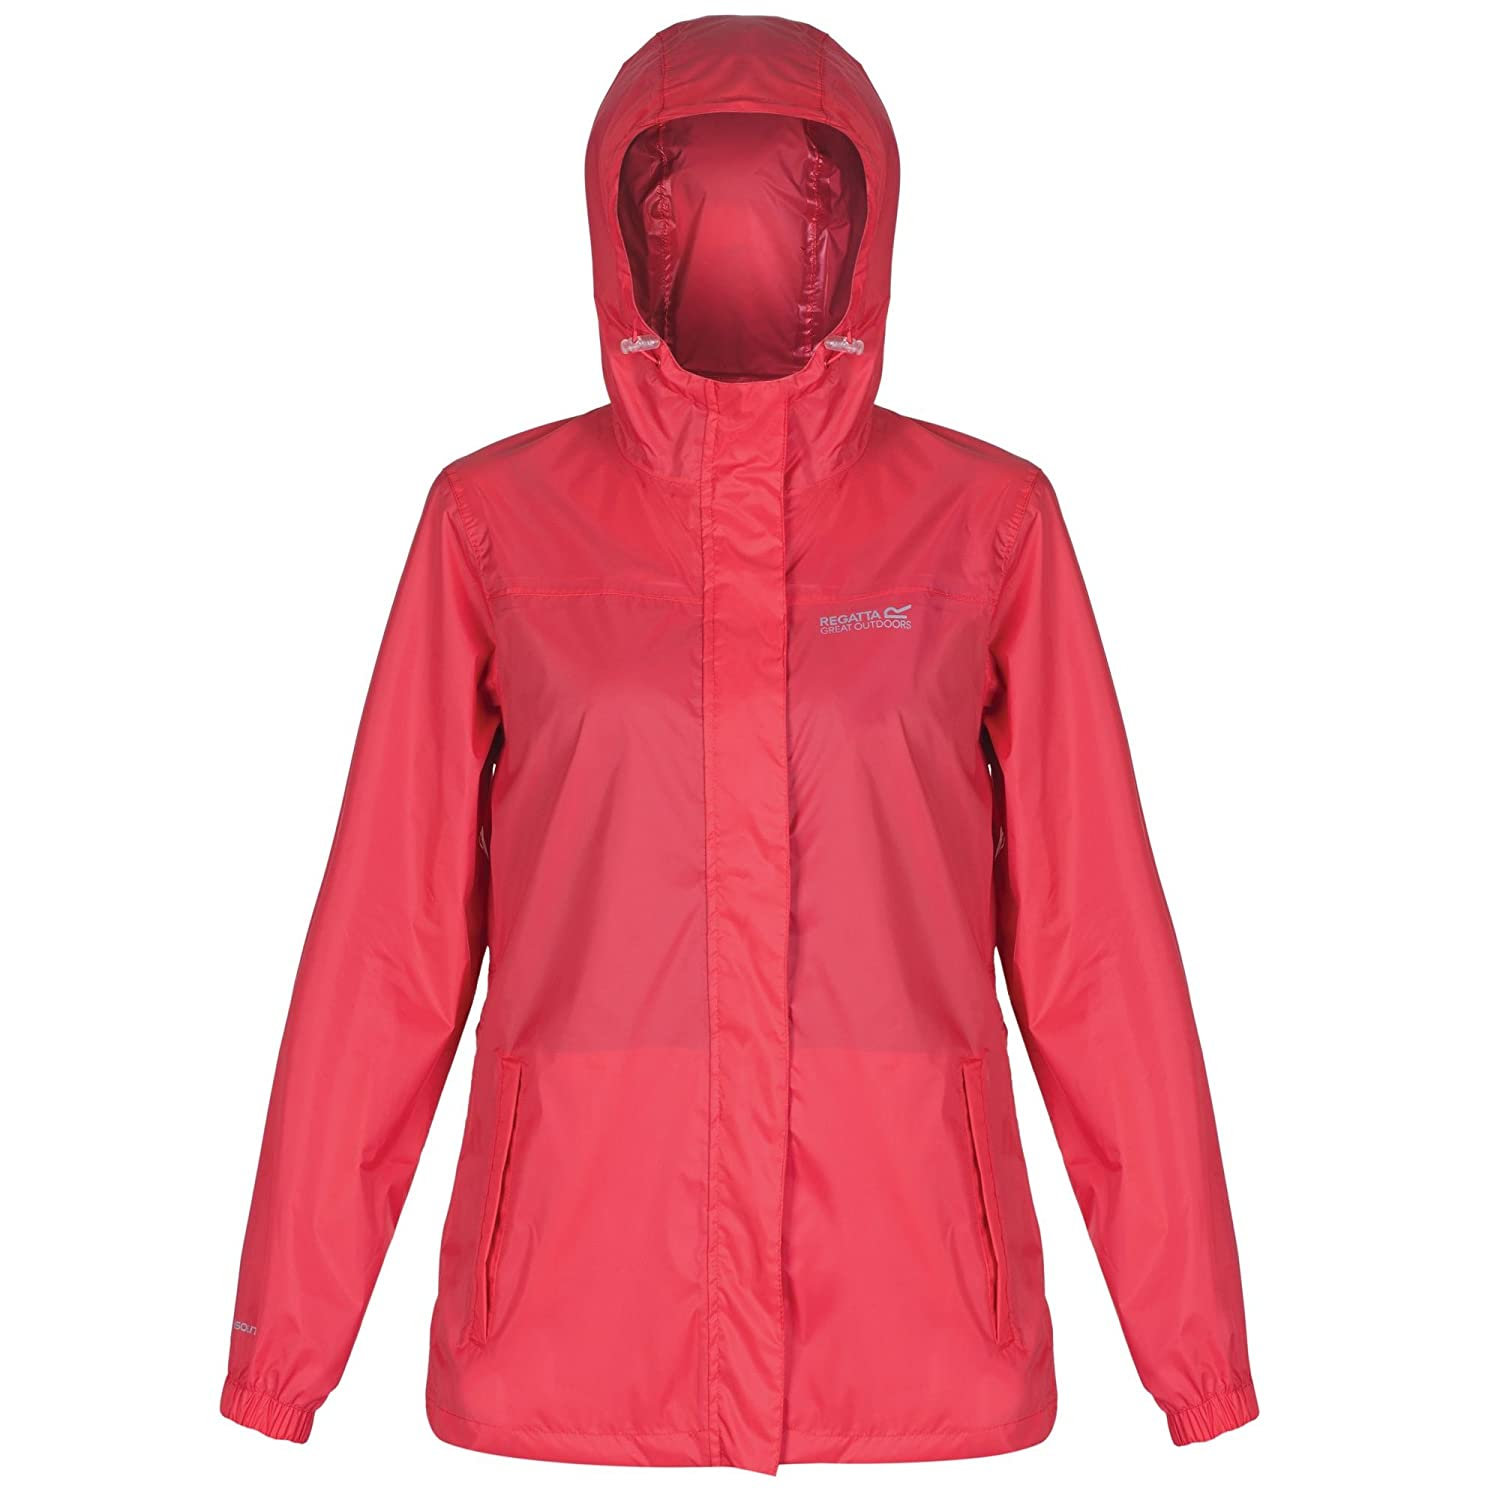 Regatta Women's Packlt Waterproof Jacket